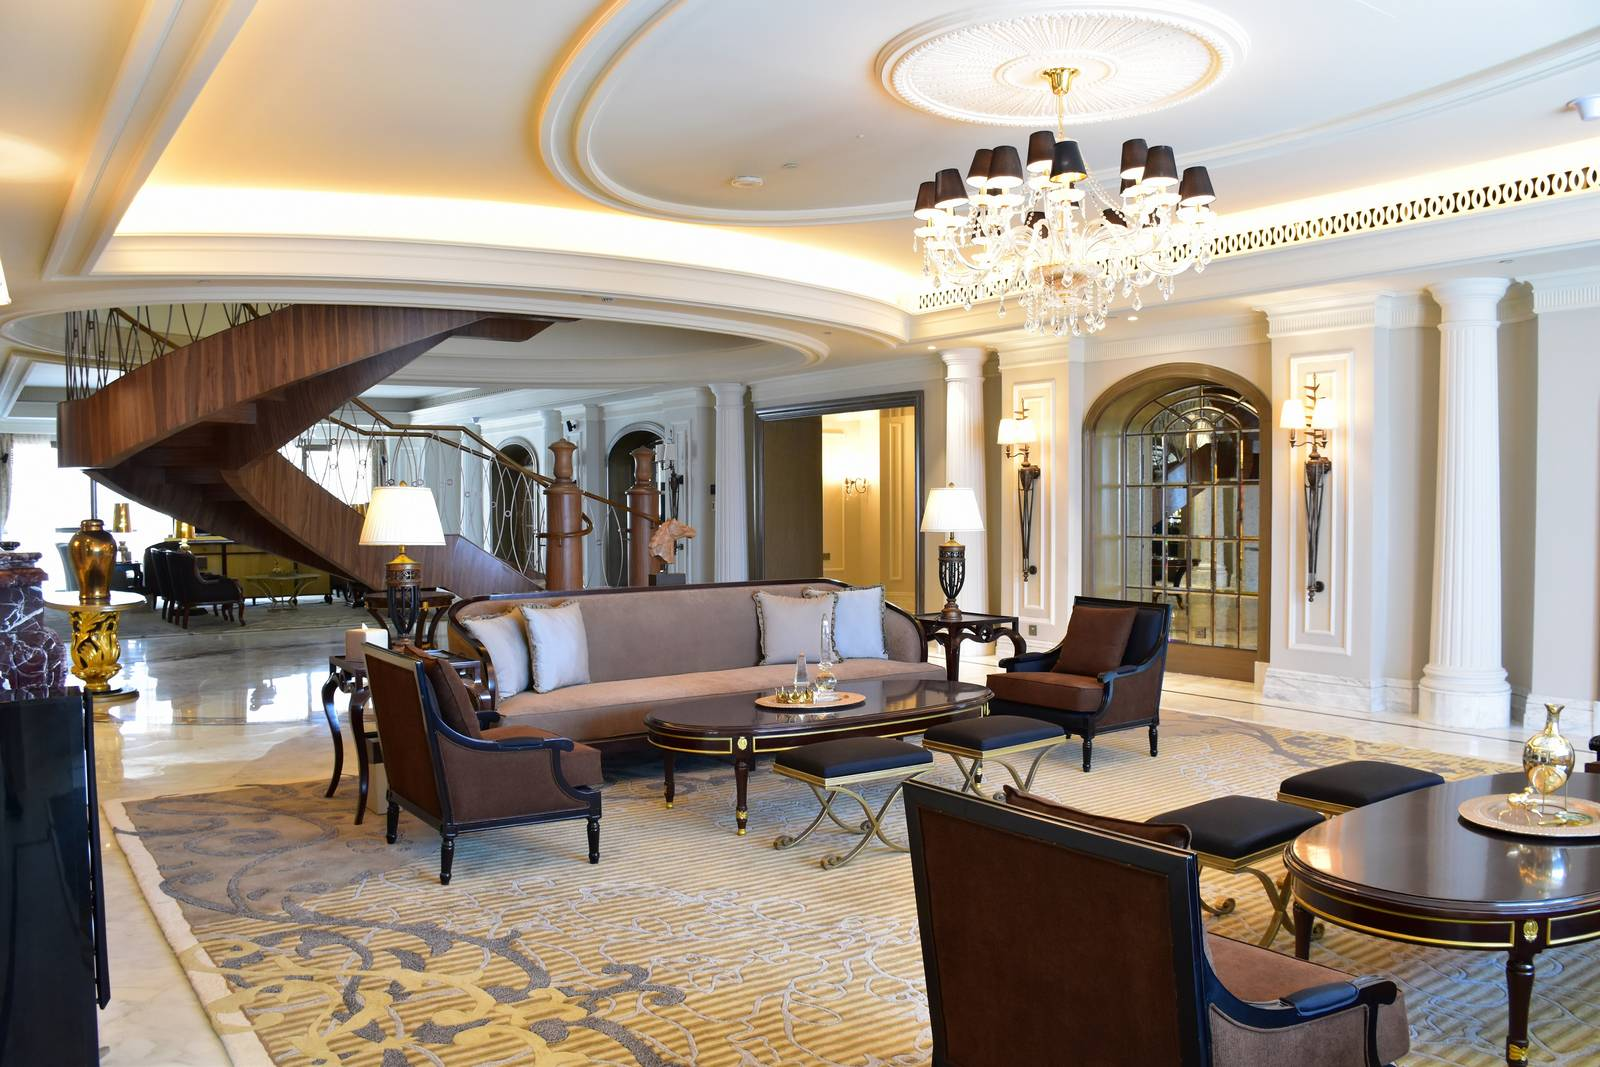 World 39 s luxury suites imperial suite st regis dubai for Nicest hotel in the world dubai